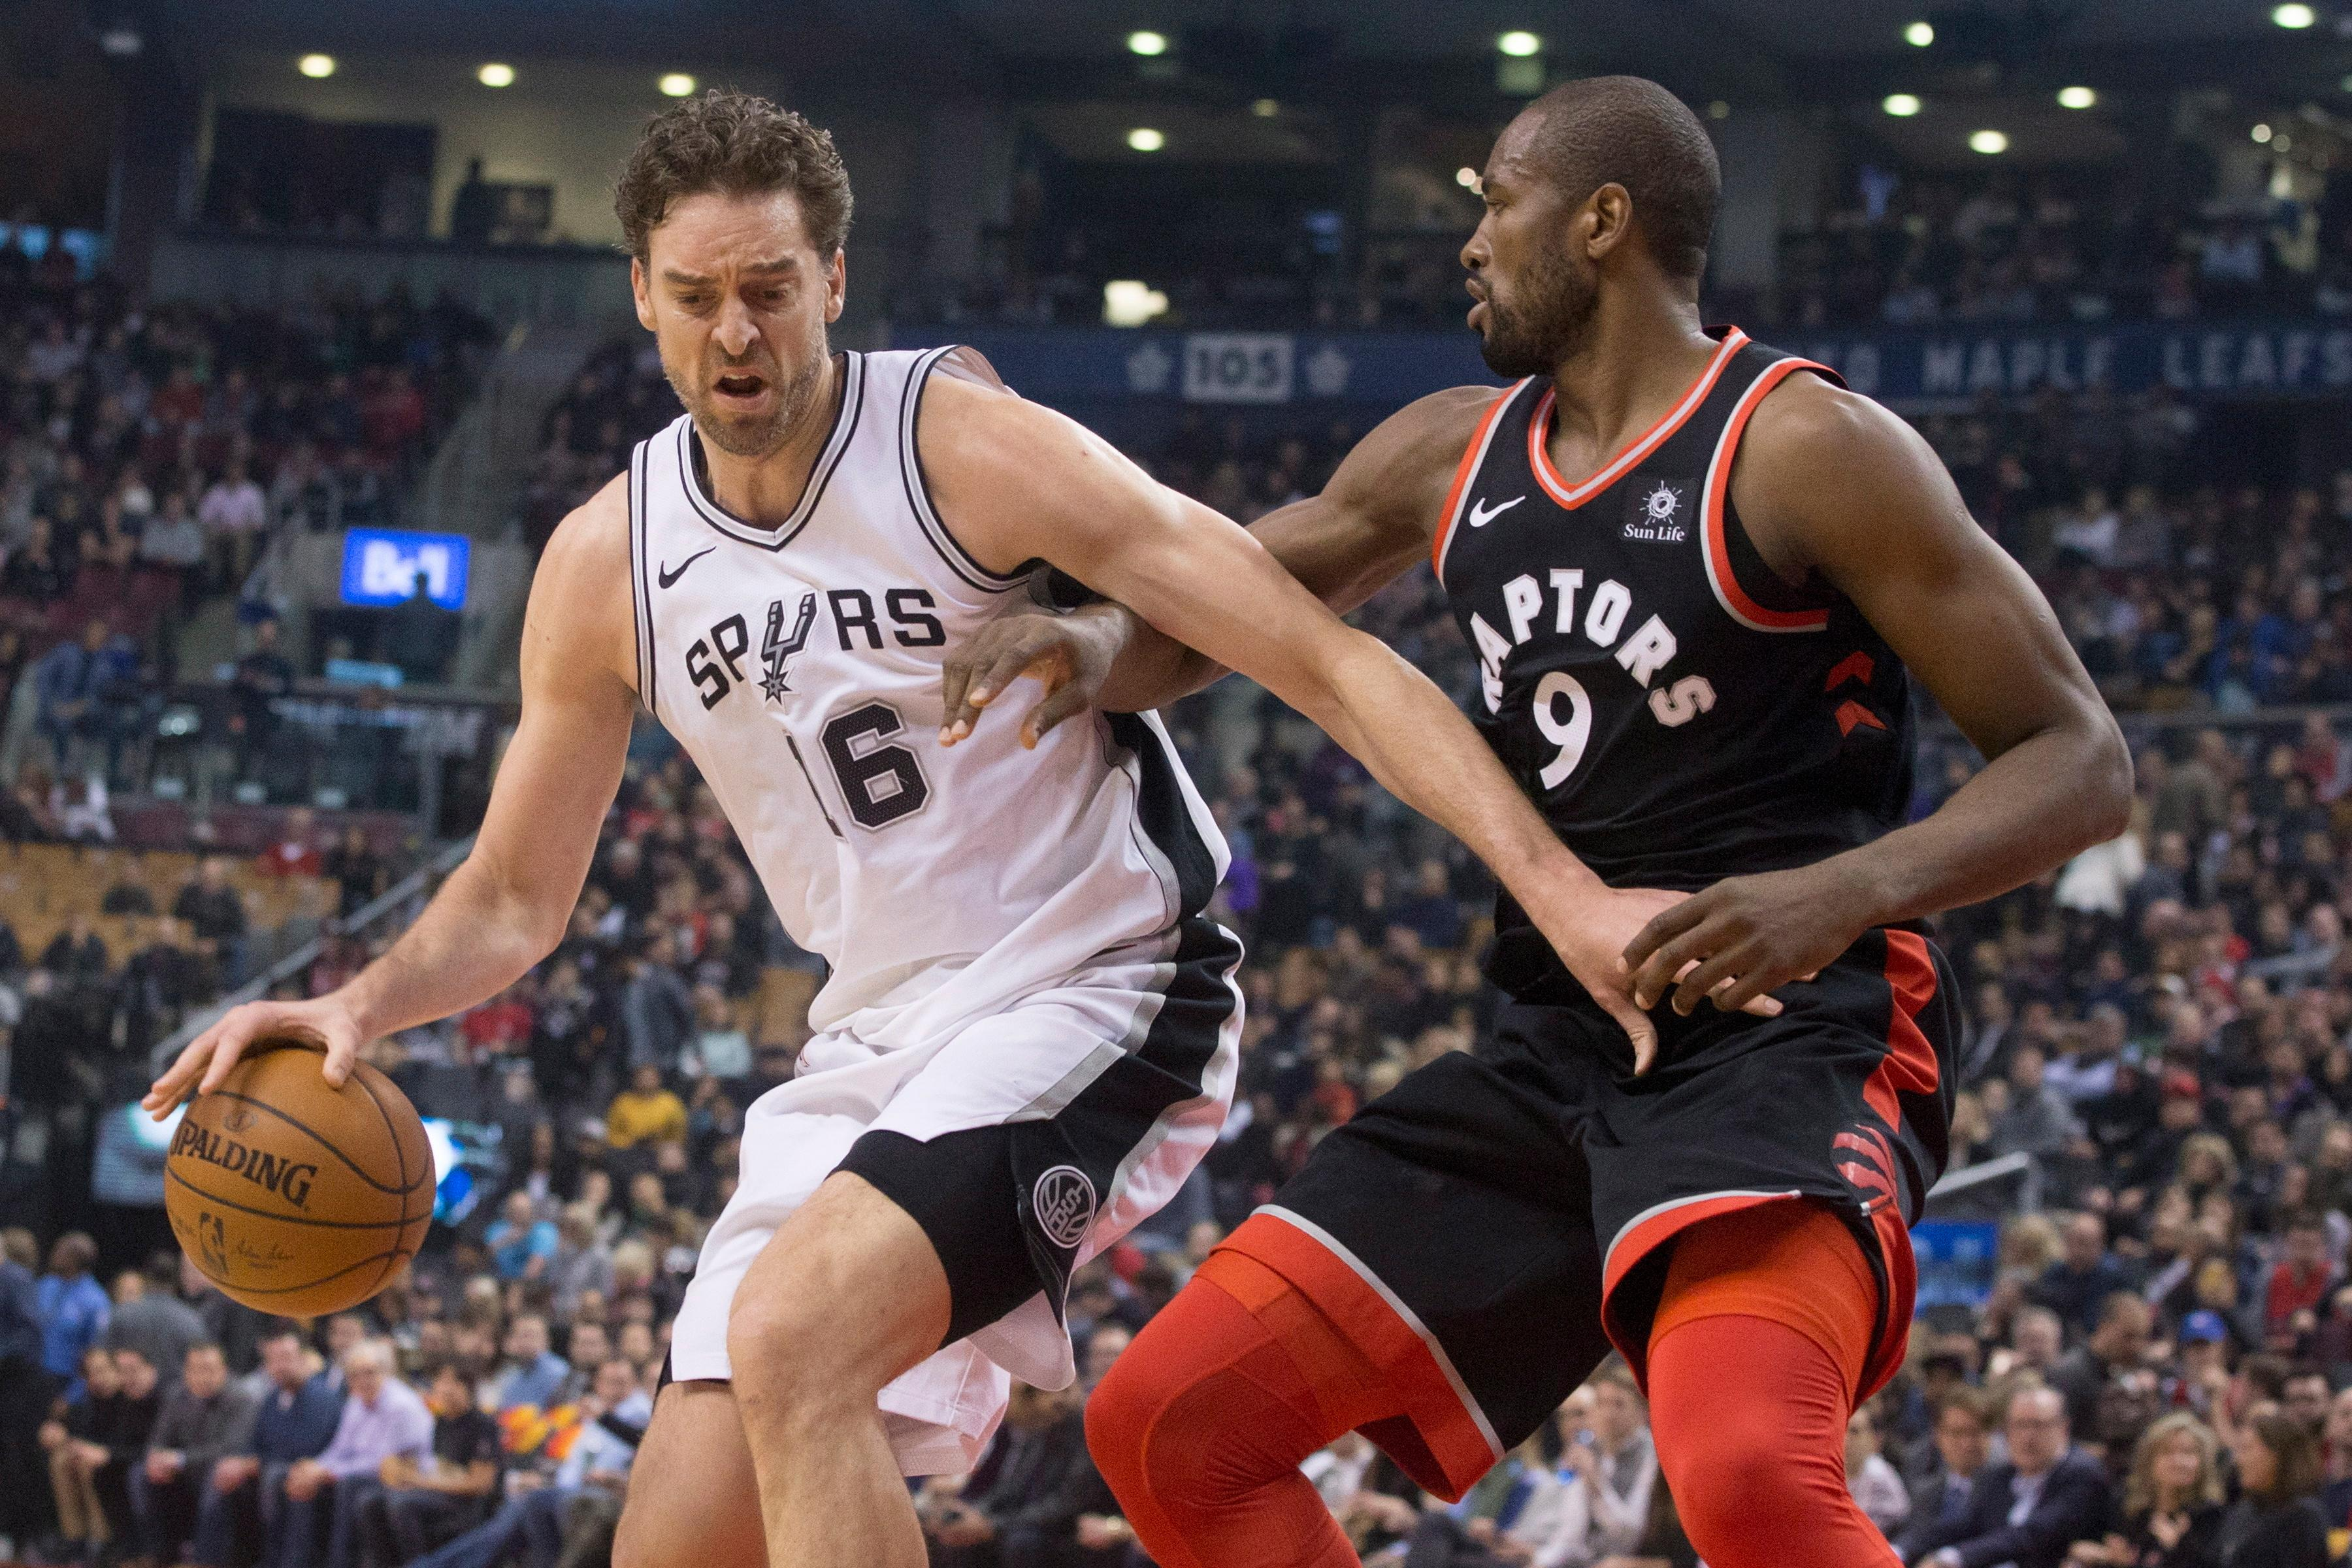 San Antonio Spurs center Pau Gasol (16) works against Toronto Raptors forward Serge Ibaka (9) during the first half of an NBA basketball game Friday, Jan. 19, 2018, in Toronto. (Chris Young/The Canadian Press via AP)